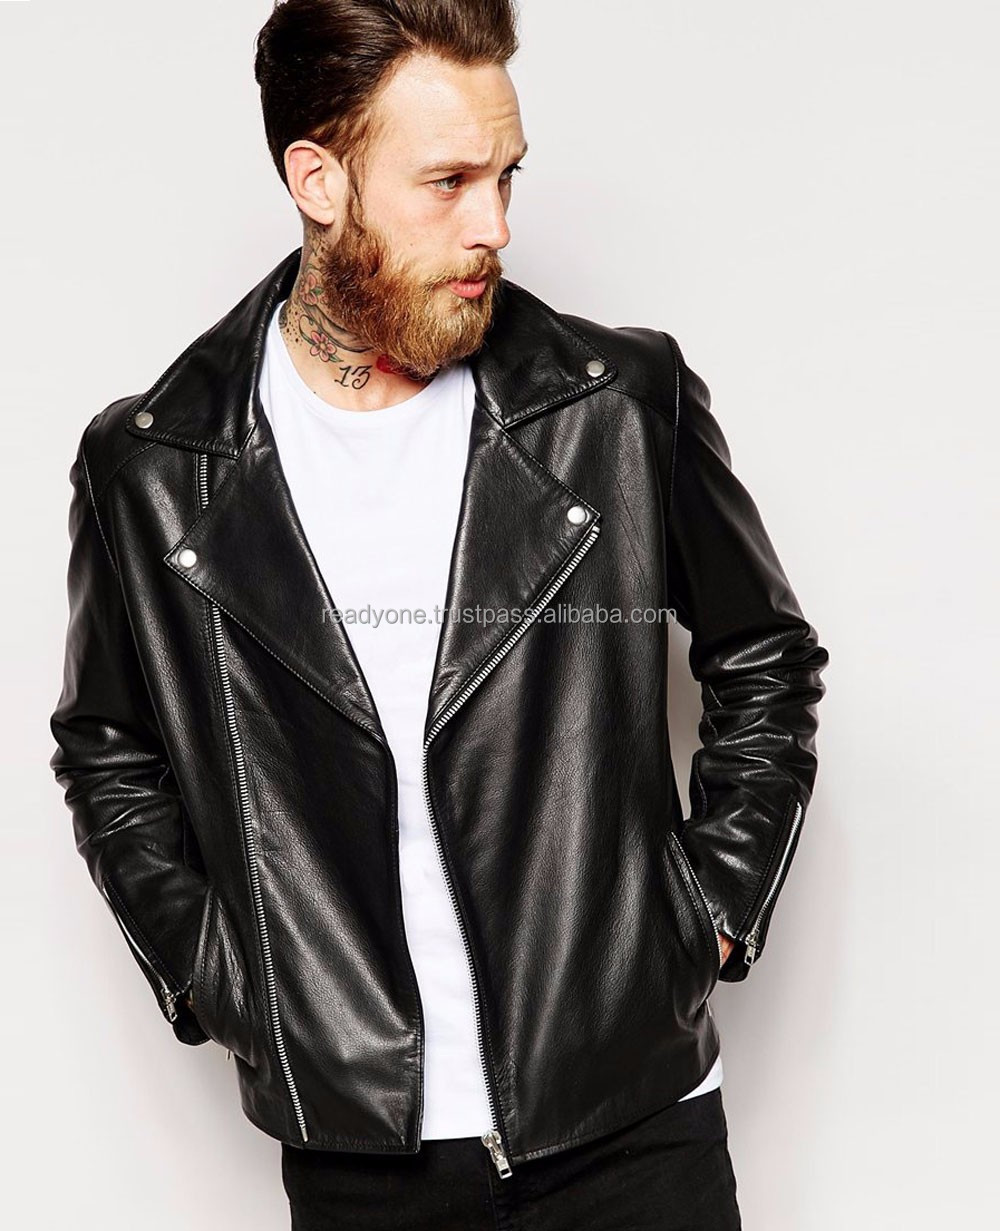 New autumn fashion mens first genuine leather jacket and business men's soft